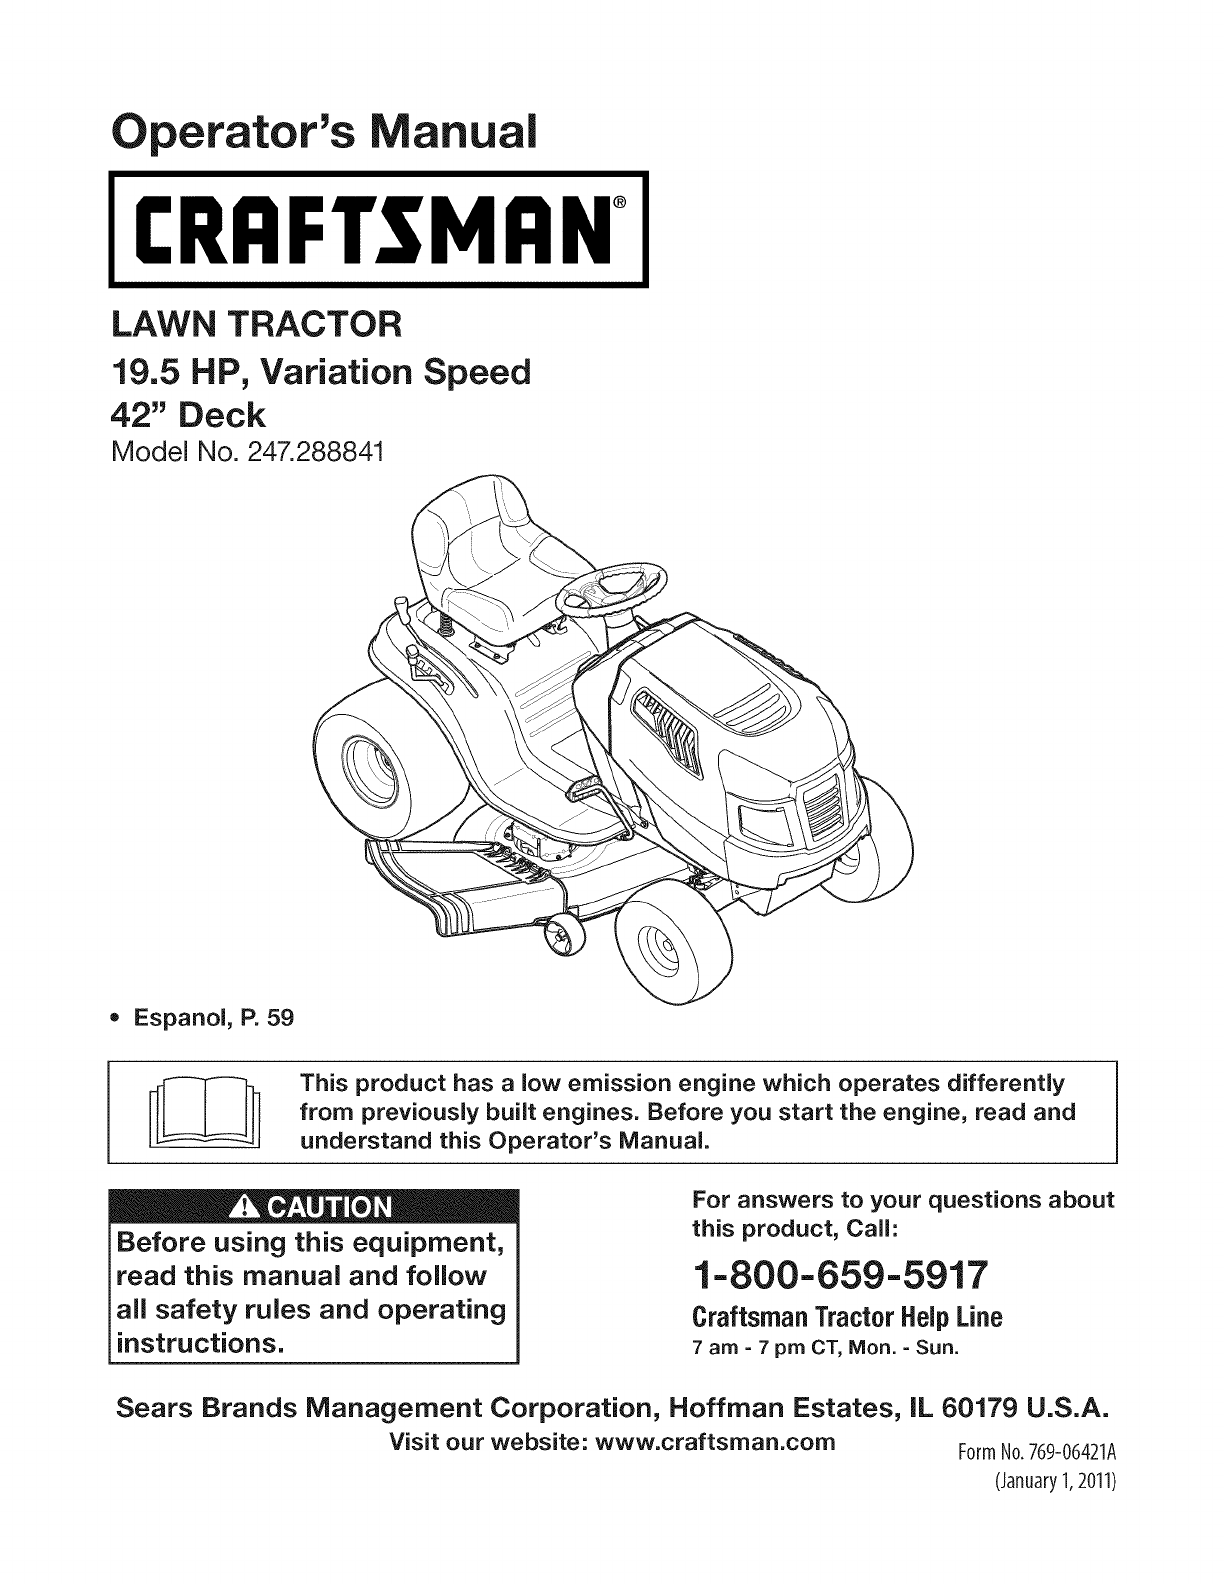 Craftsman 247288841 User Manual Tractor Manuals And Guides 1109233l 48 Mower Deck Belt Diagram Besides Drive Mtd Lawn Perators Irnfrsmrn